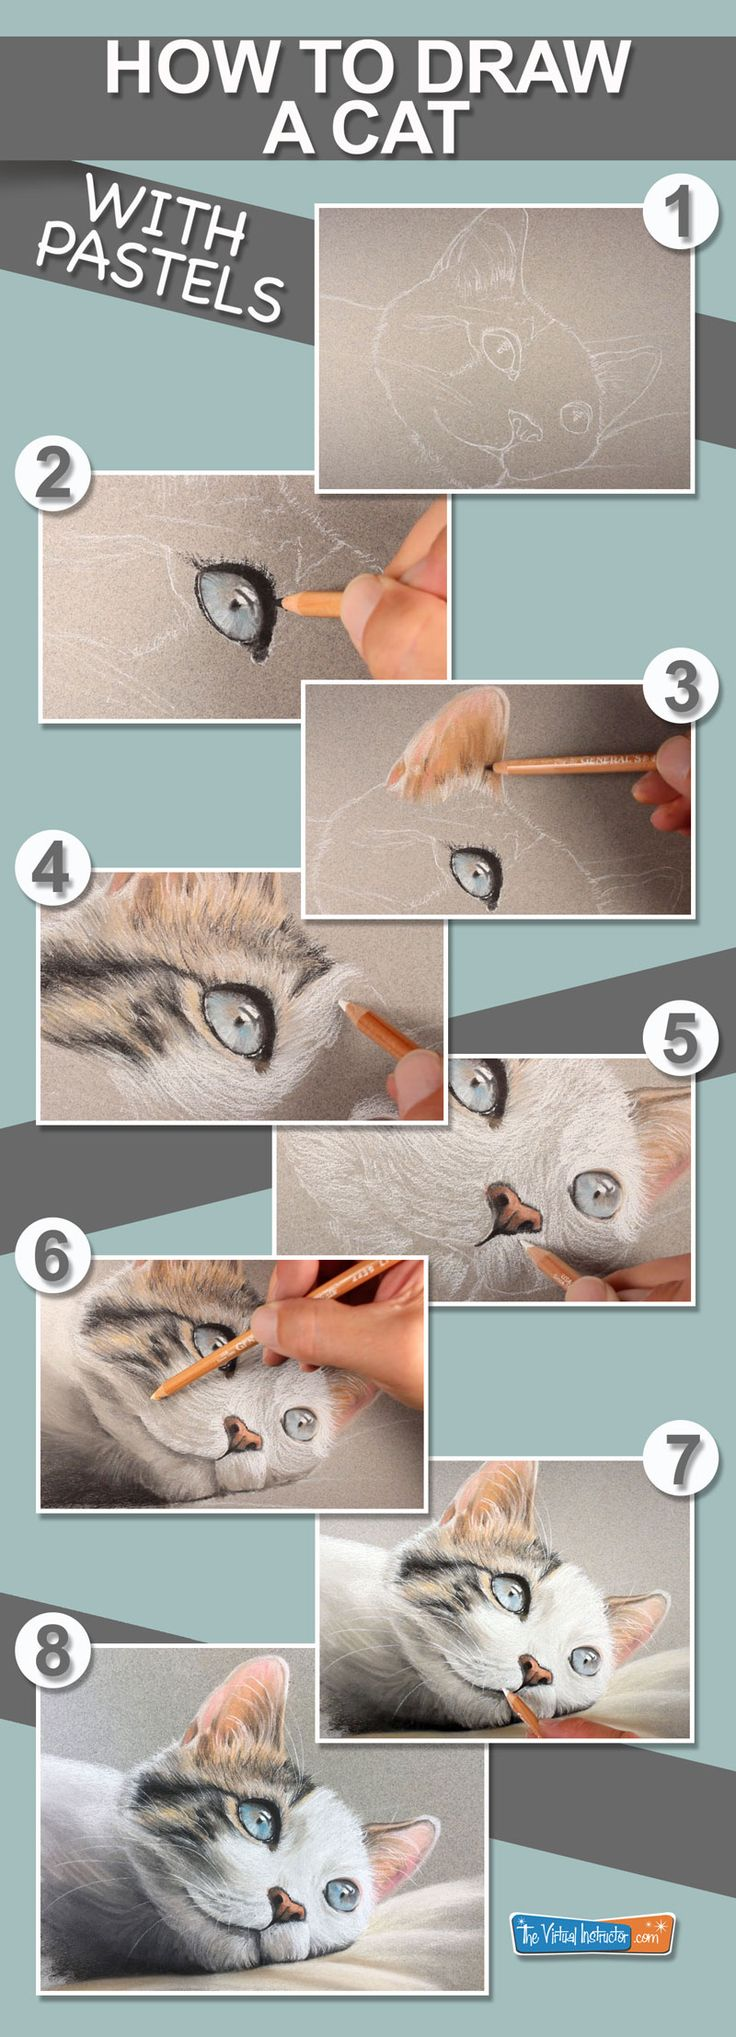 How To Draw A Cat With Pastel Pencils #pastels #cats